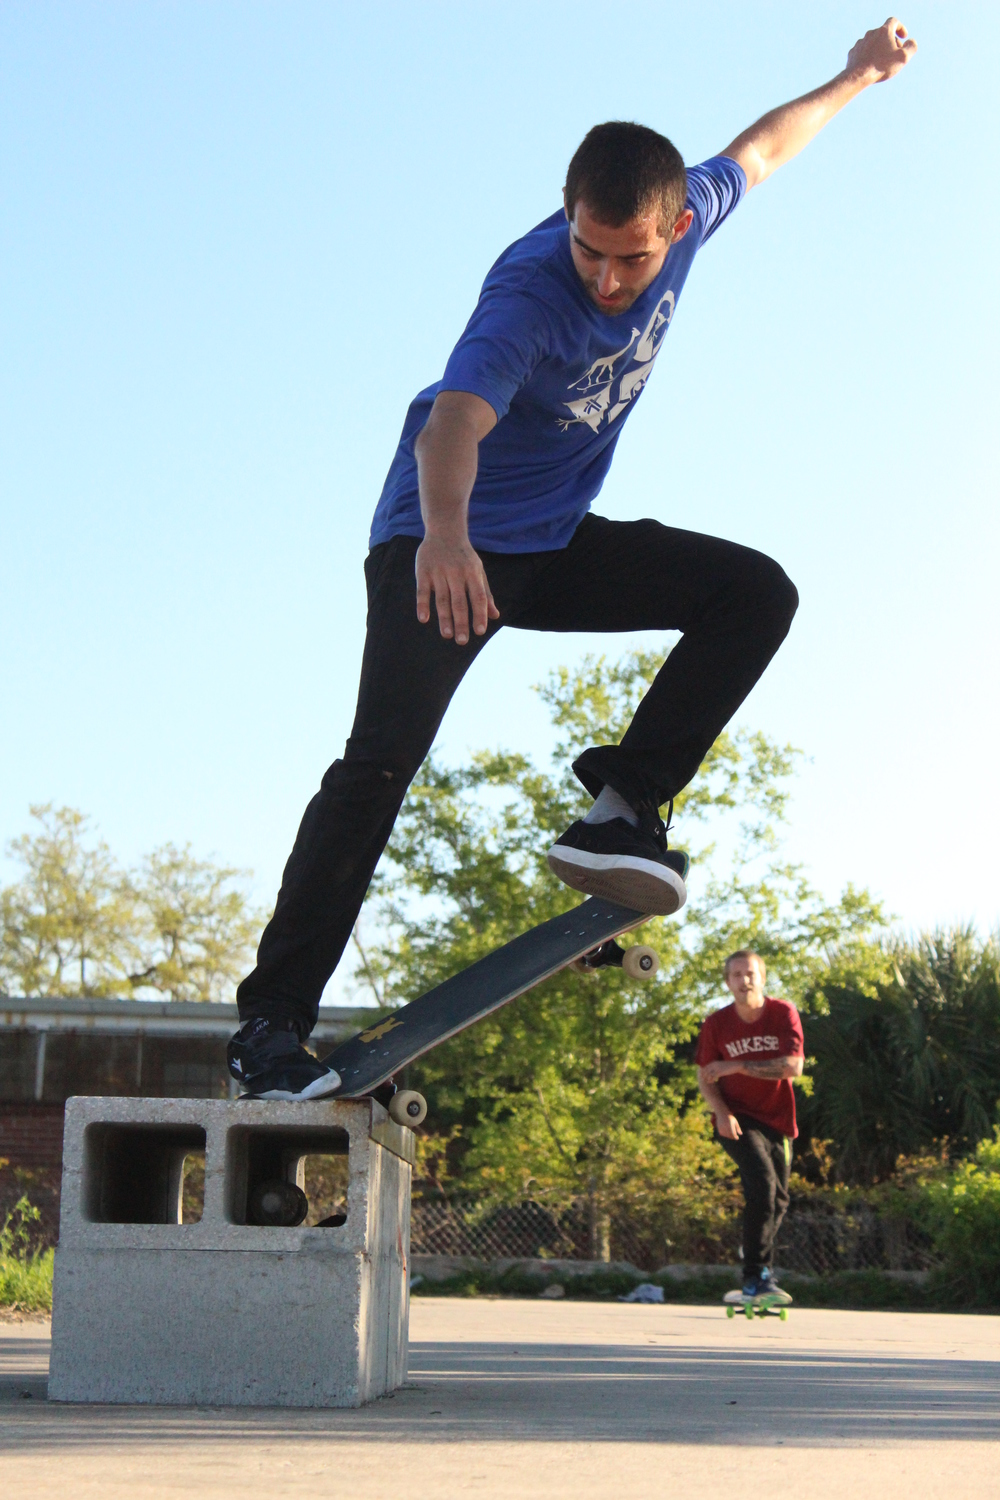 Whats a crookie grind without a little tweak? Robert